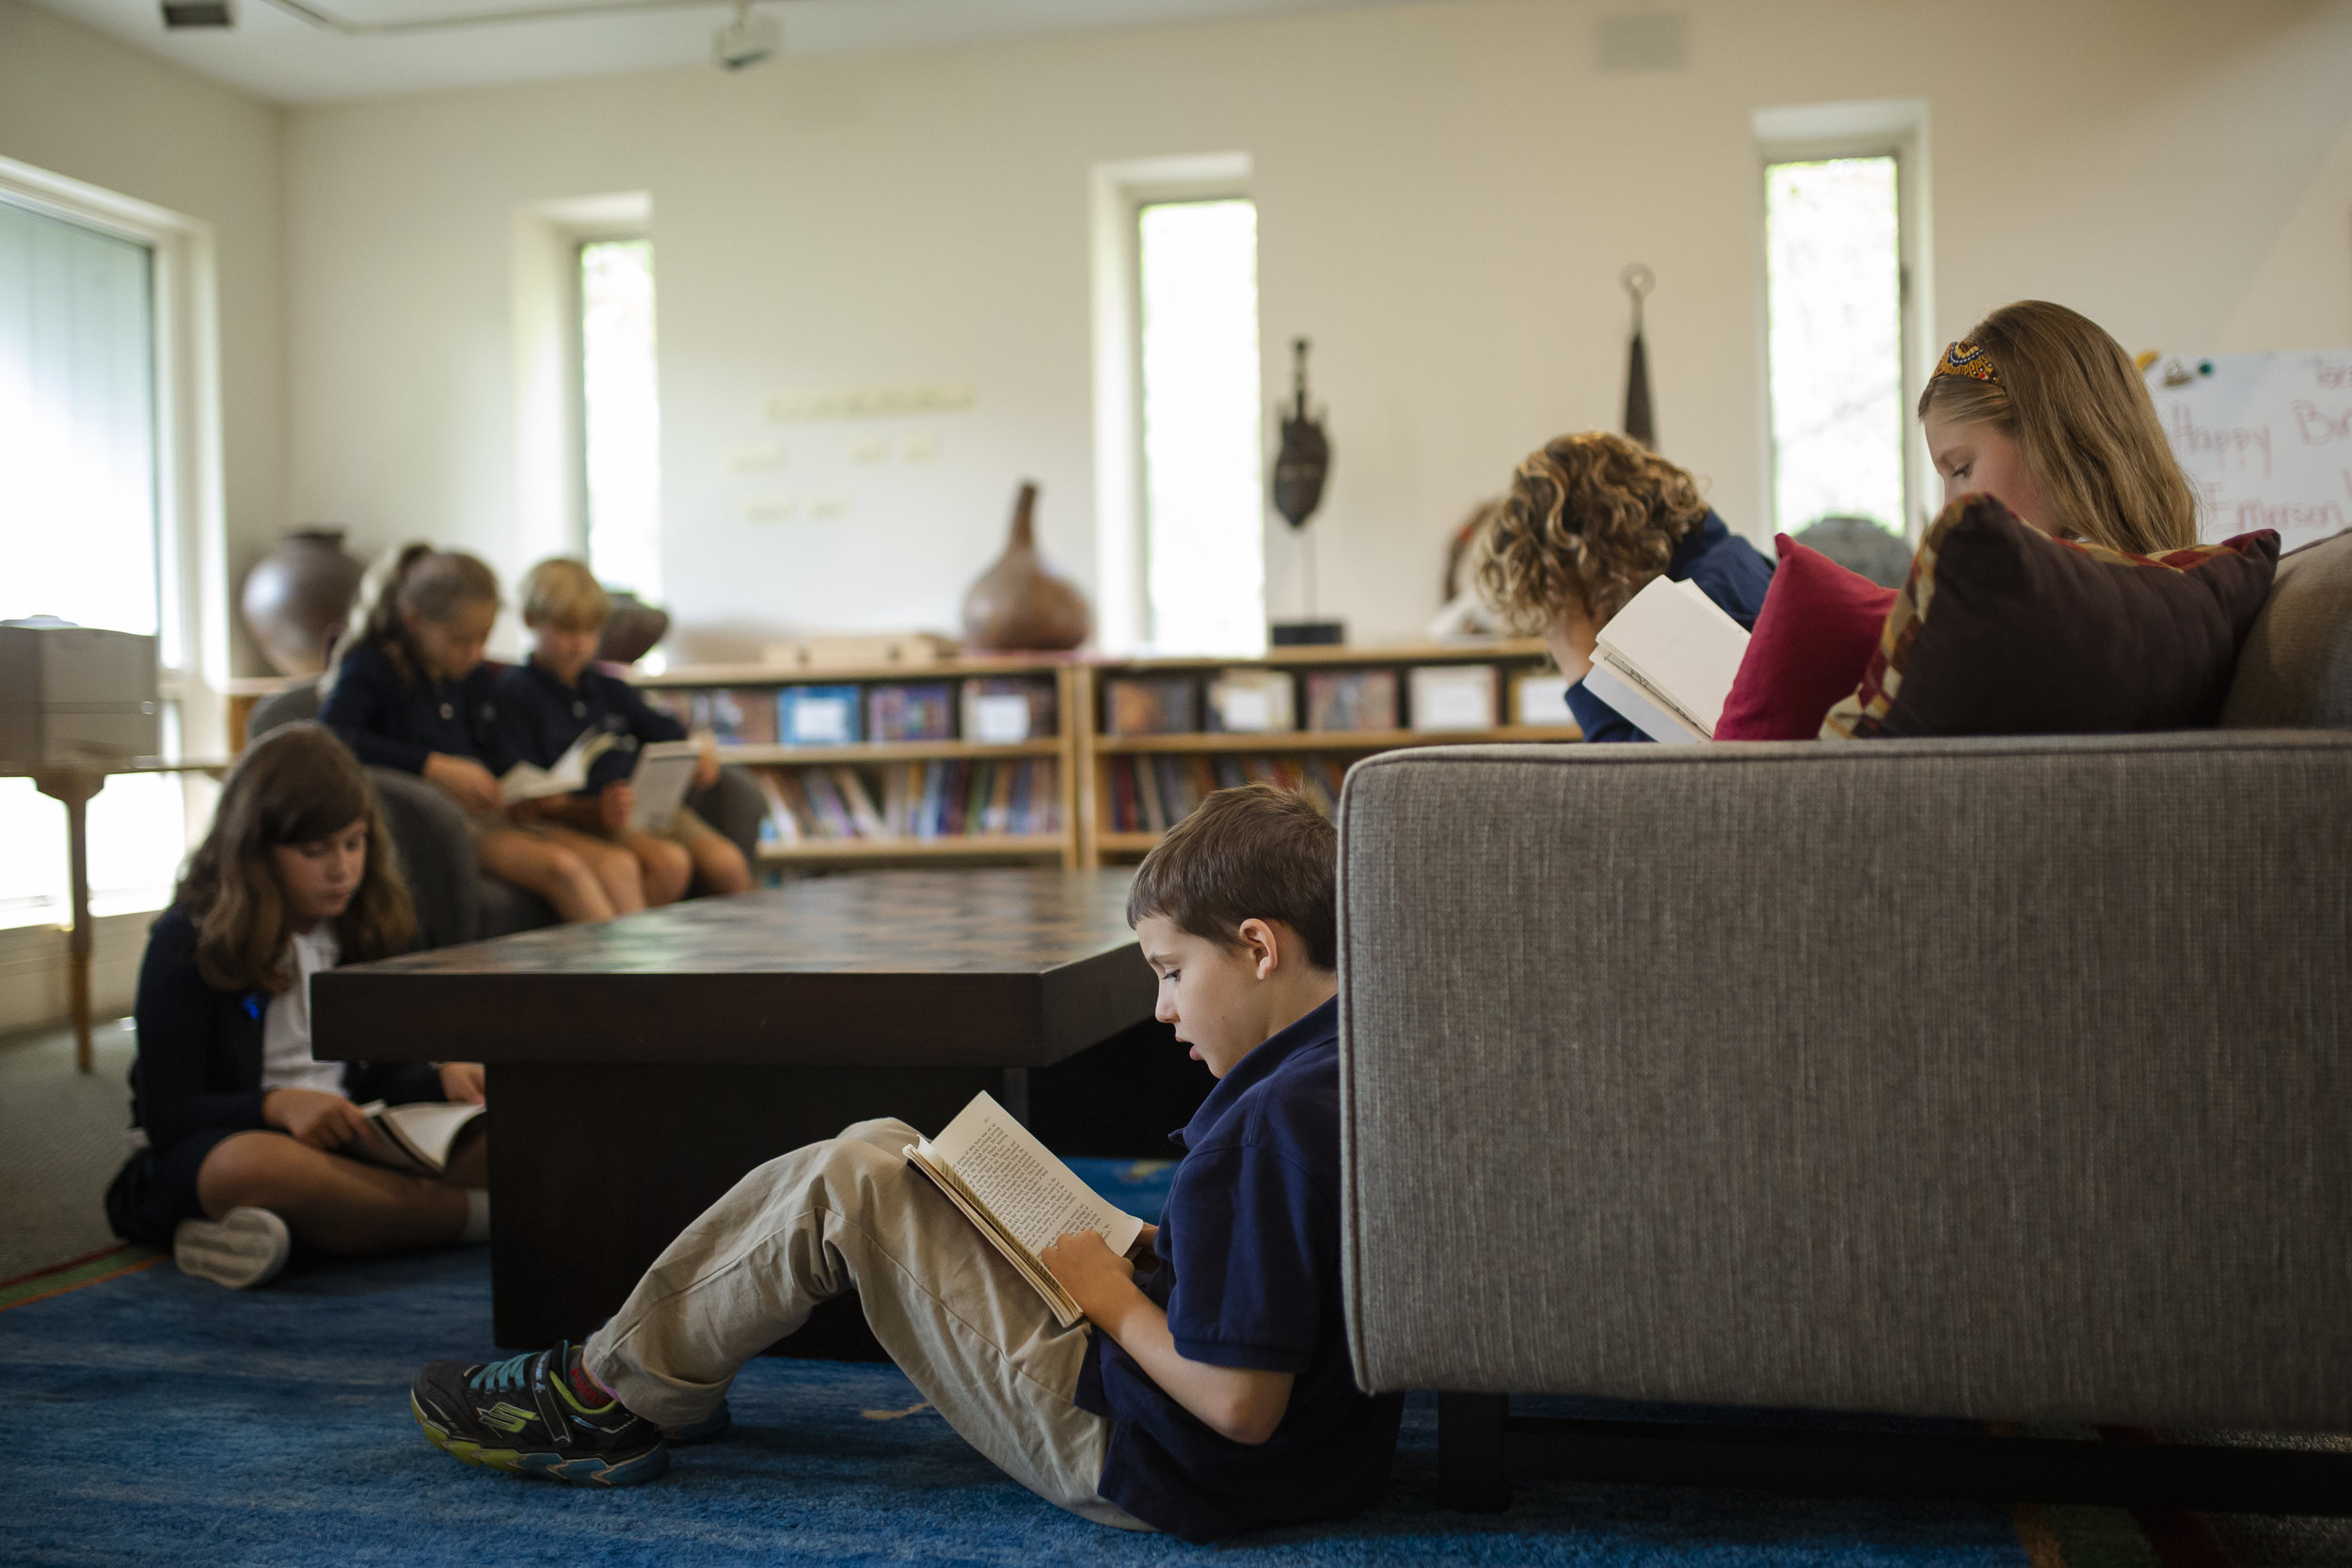 Students engaged in independent reading in one of the Ross School libraries.